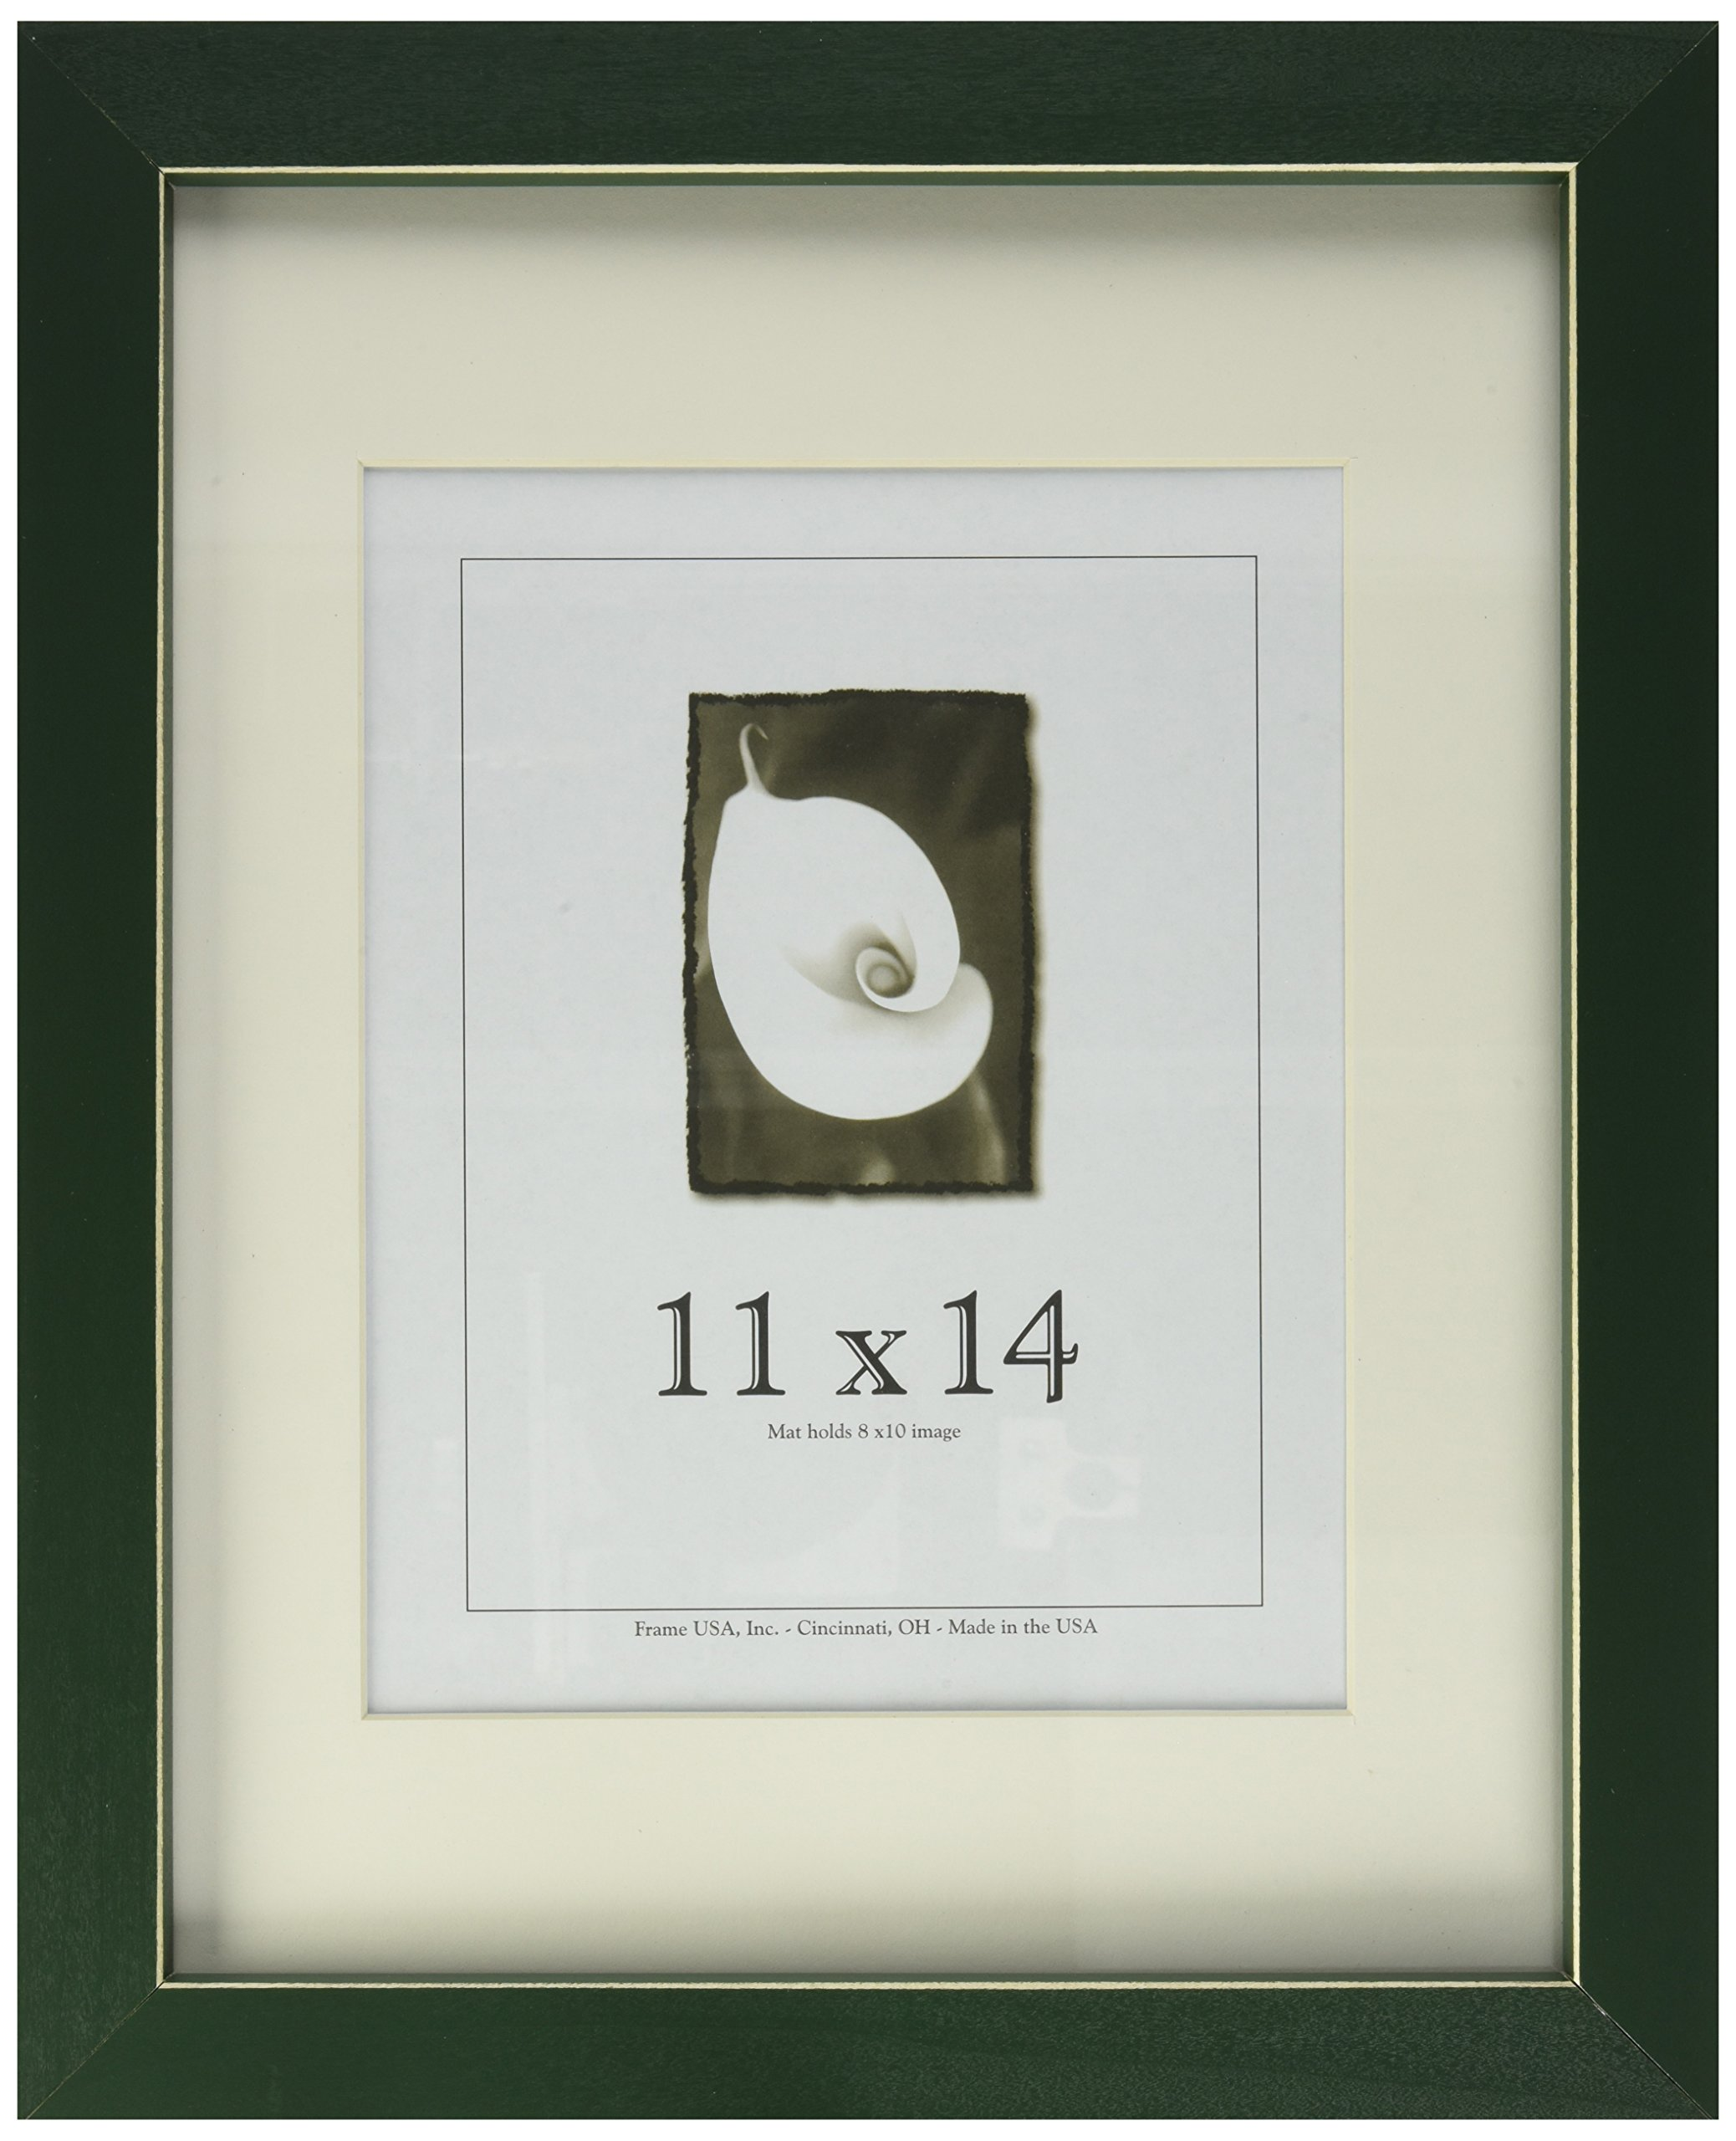 11x14 Green Picture Frame with Clean Cut Edge